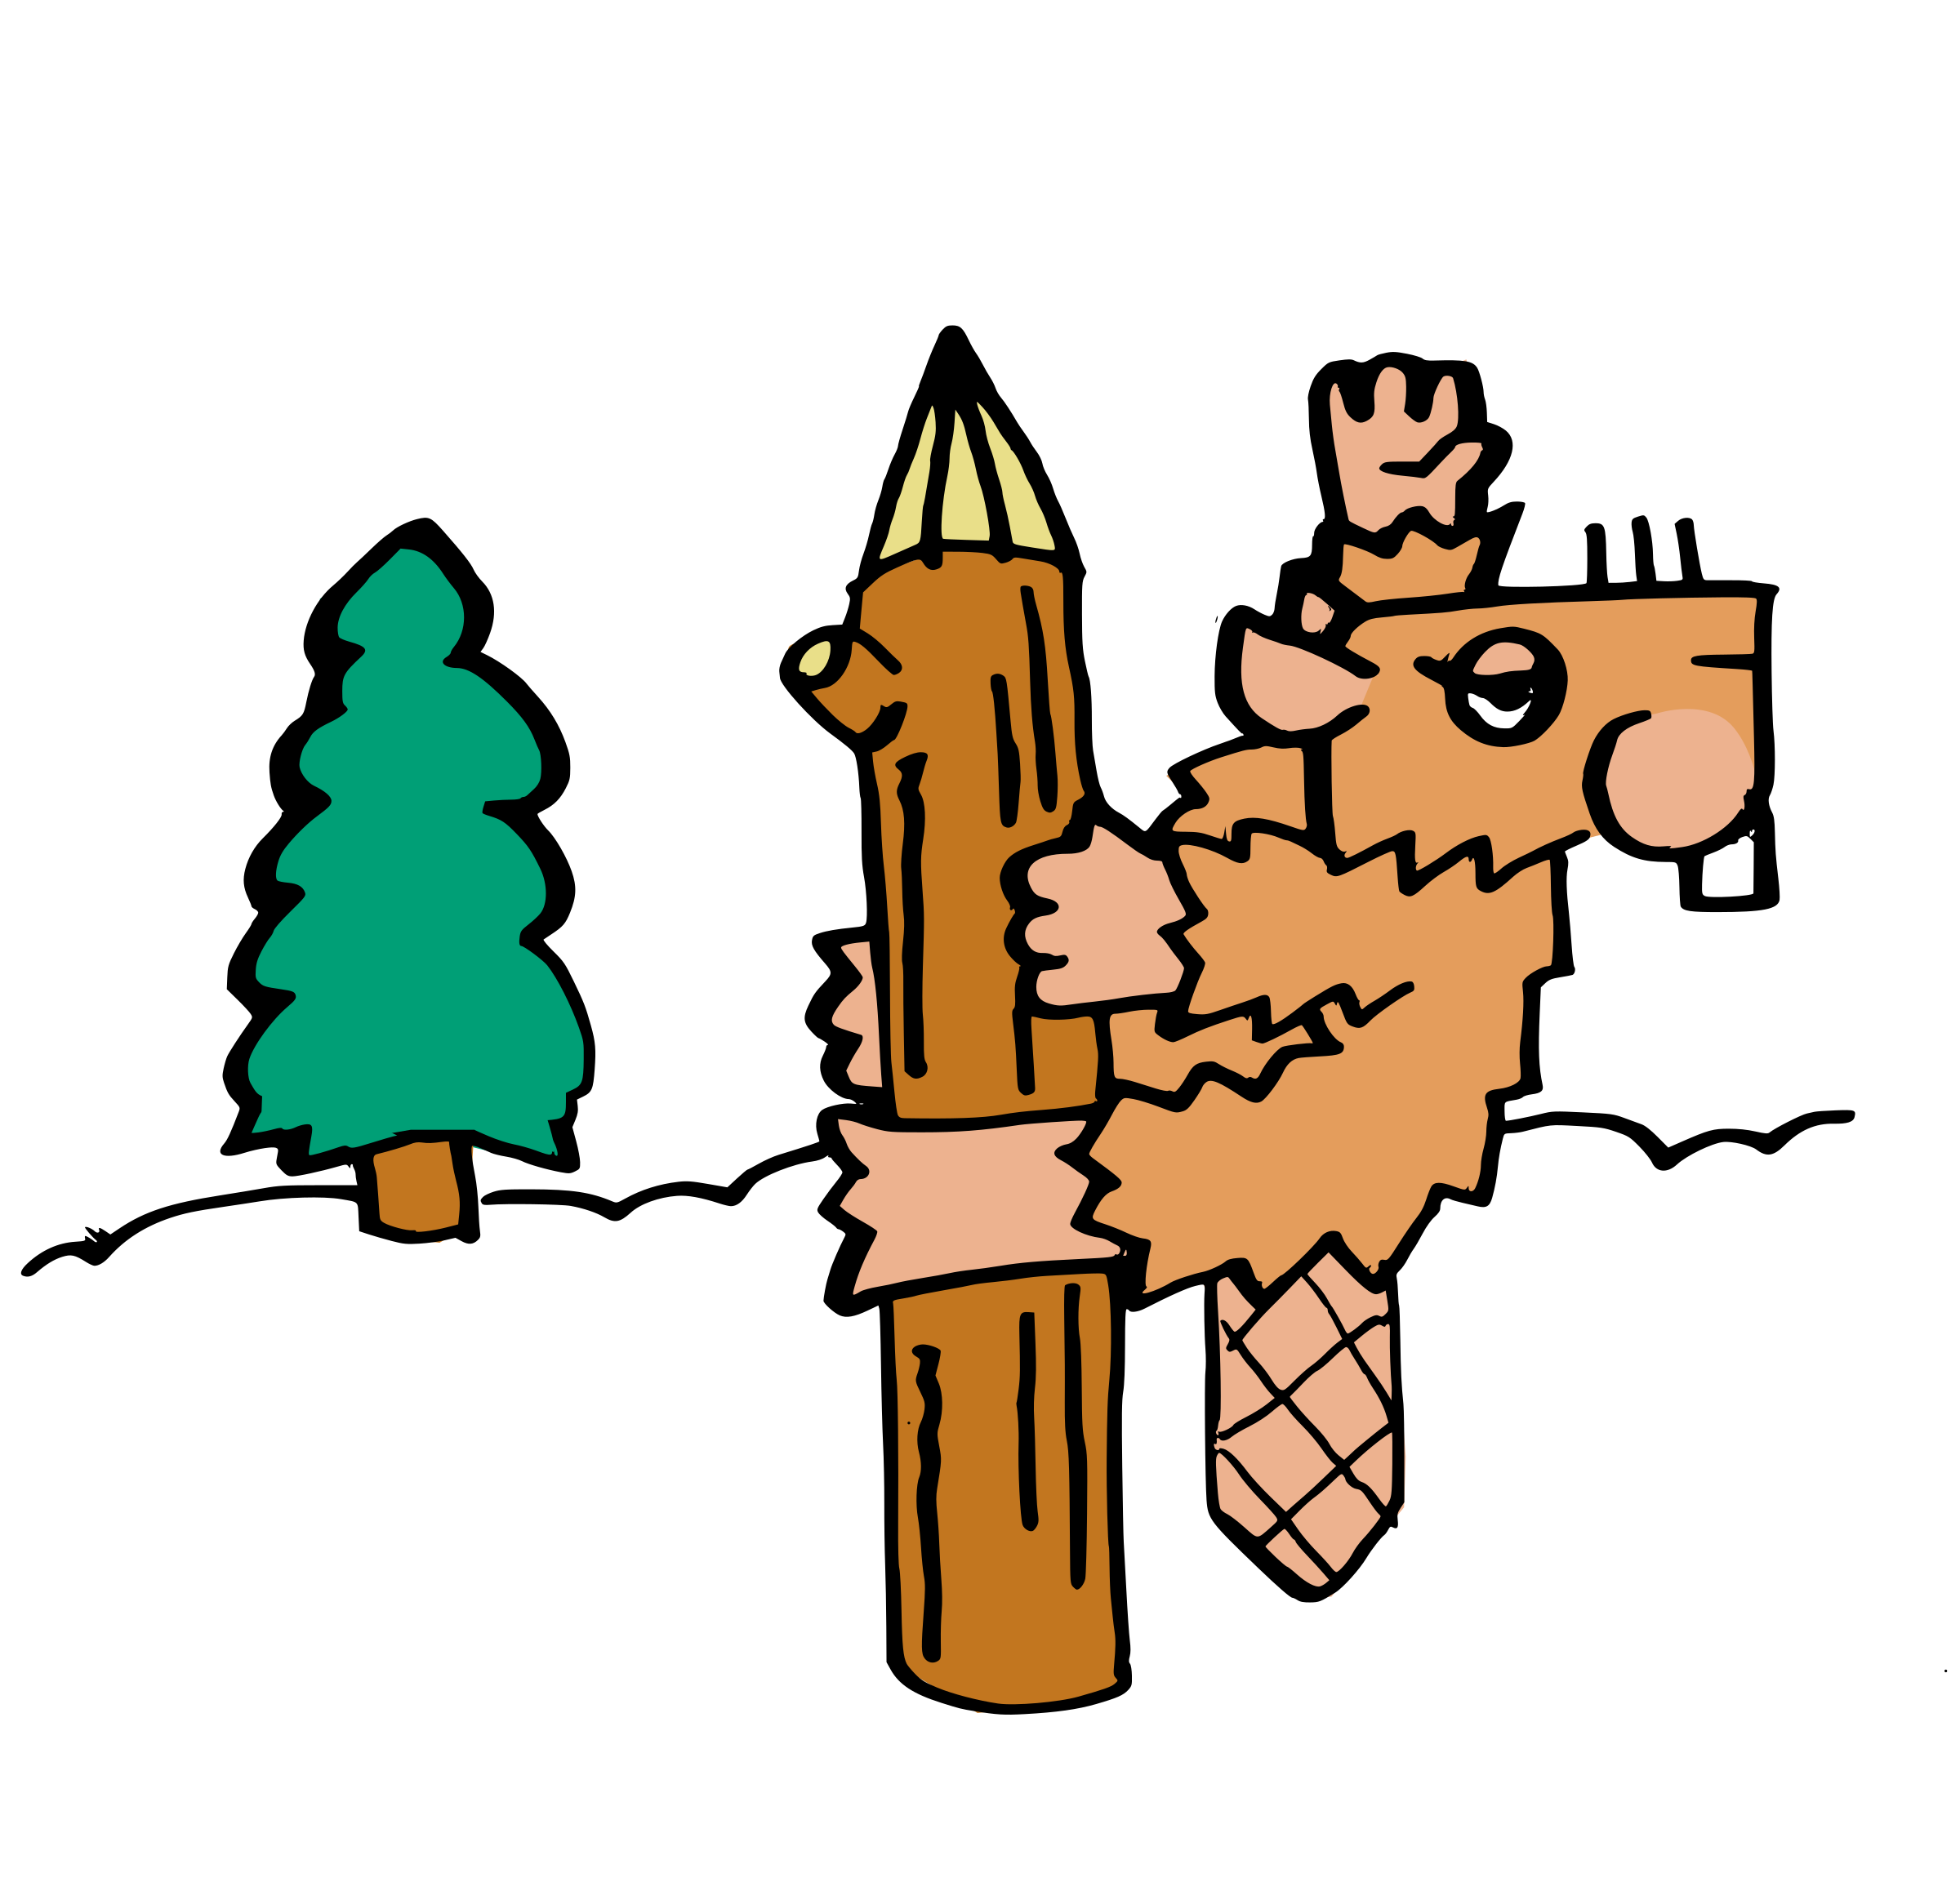 Clipart phone pole. Dancing big image png